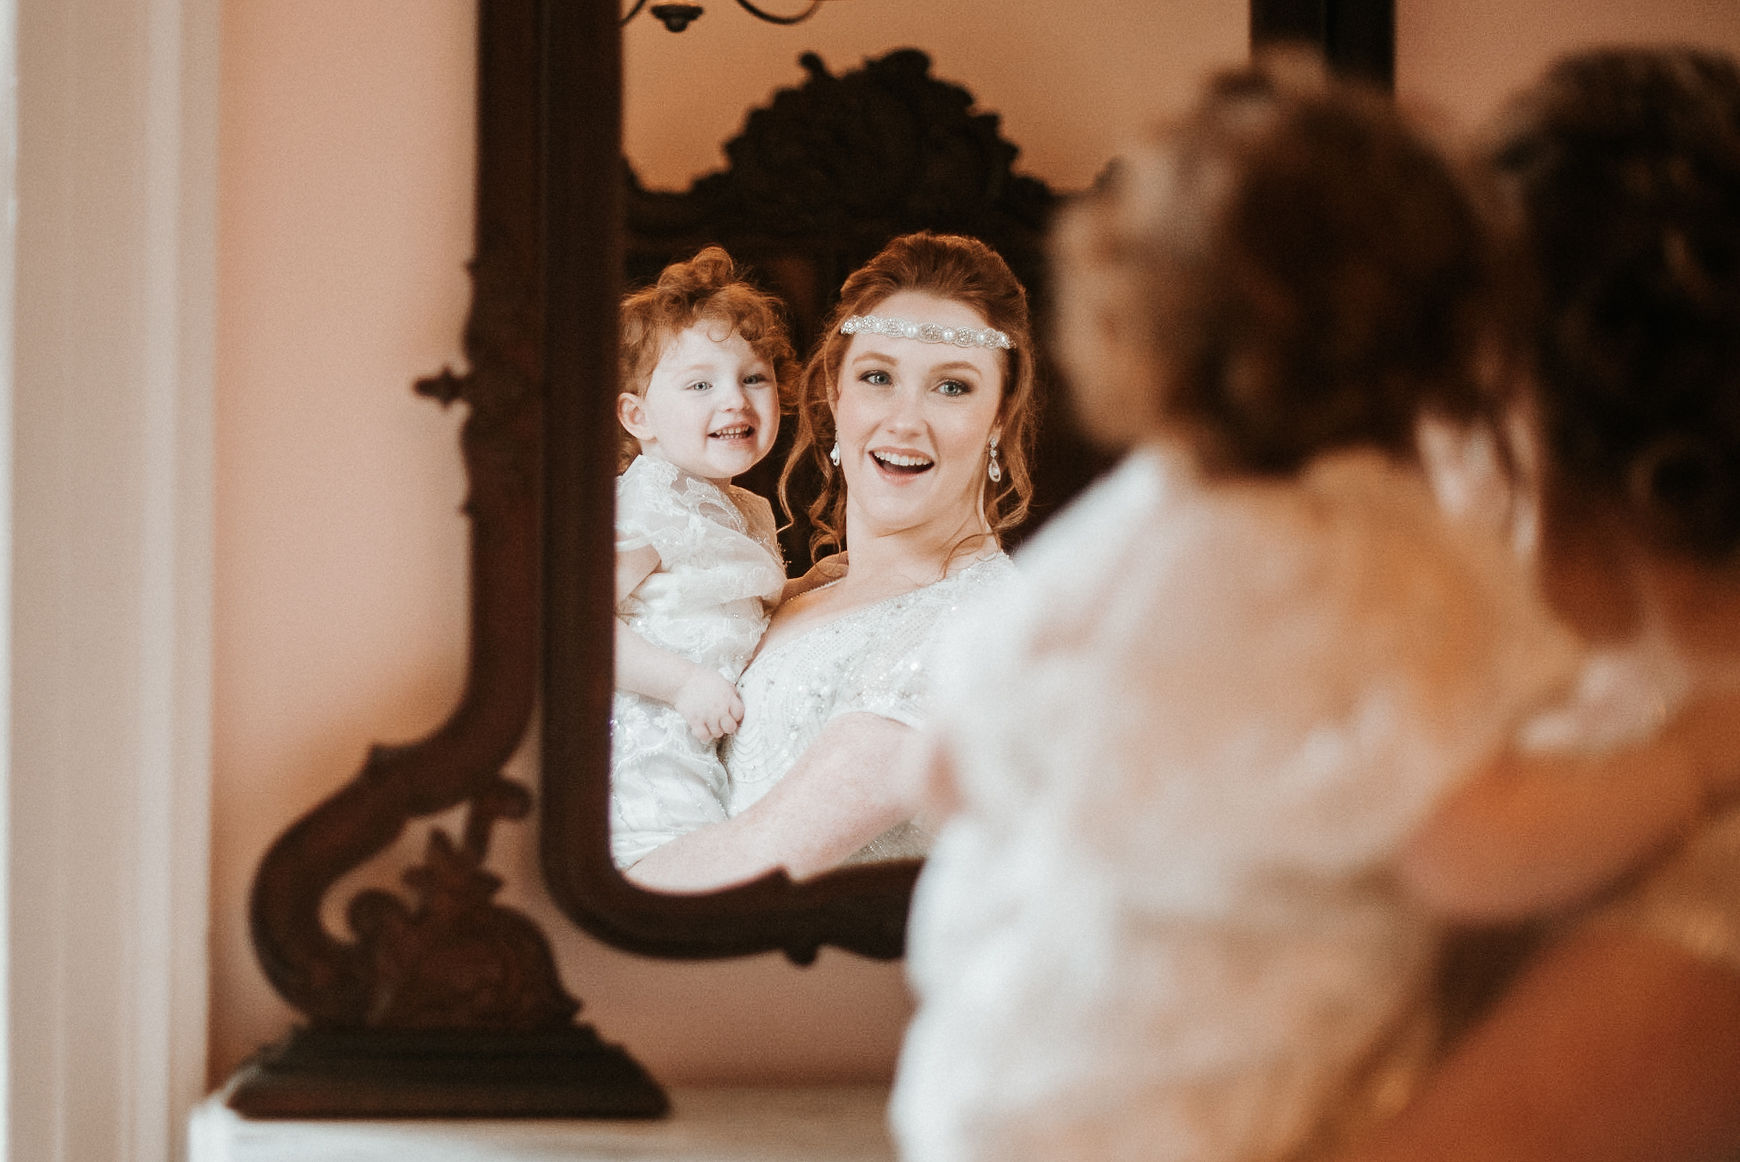 Bride and her daughter looking in a mirror.